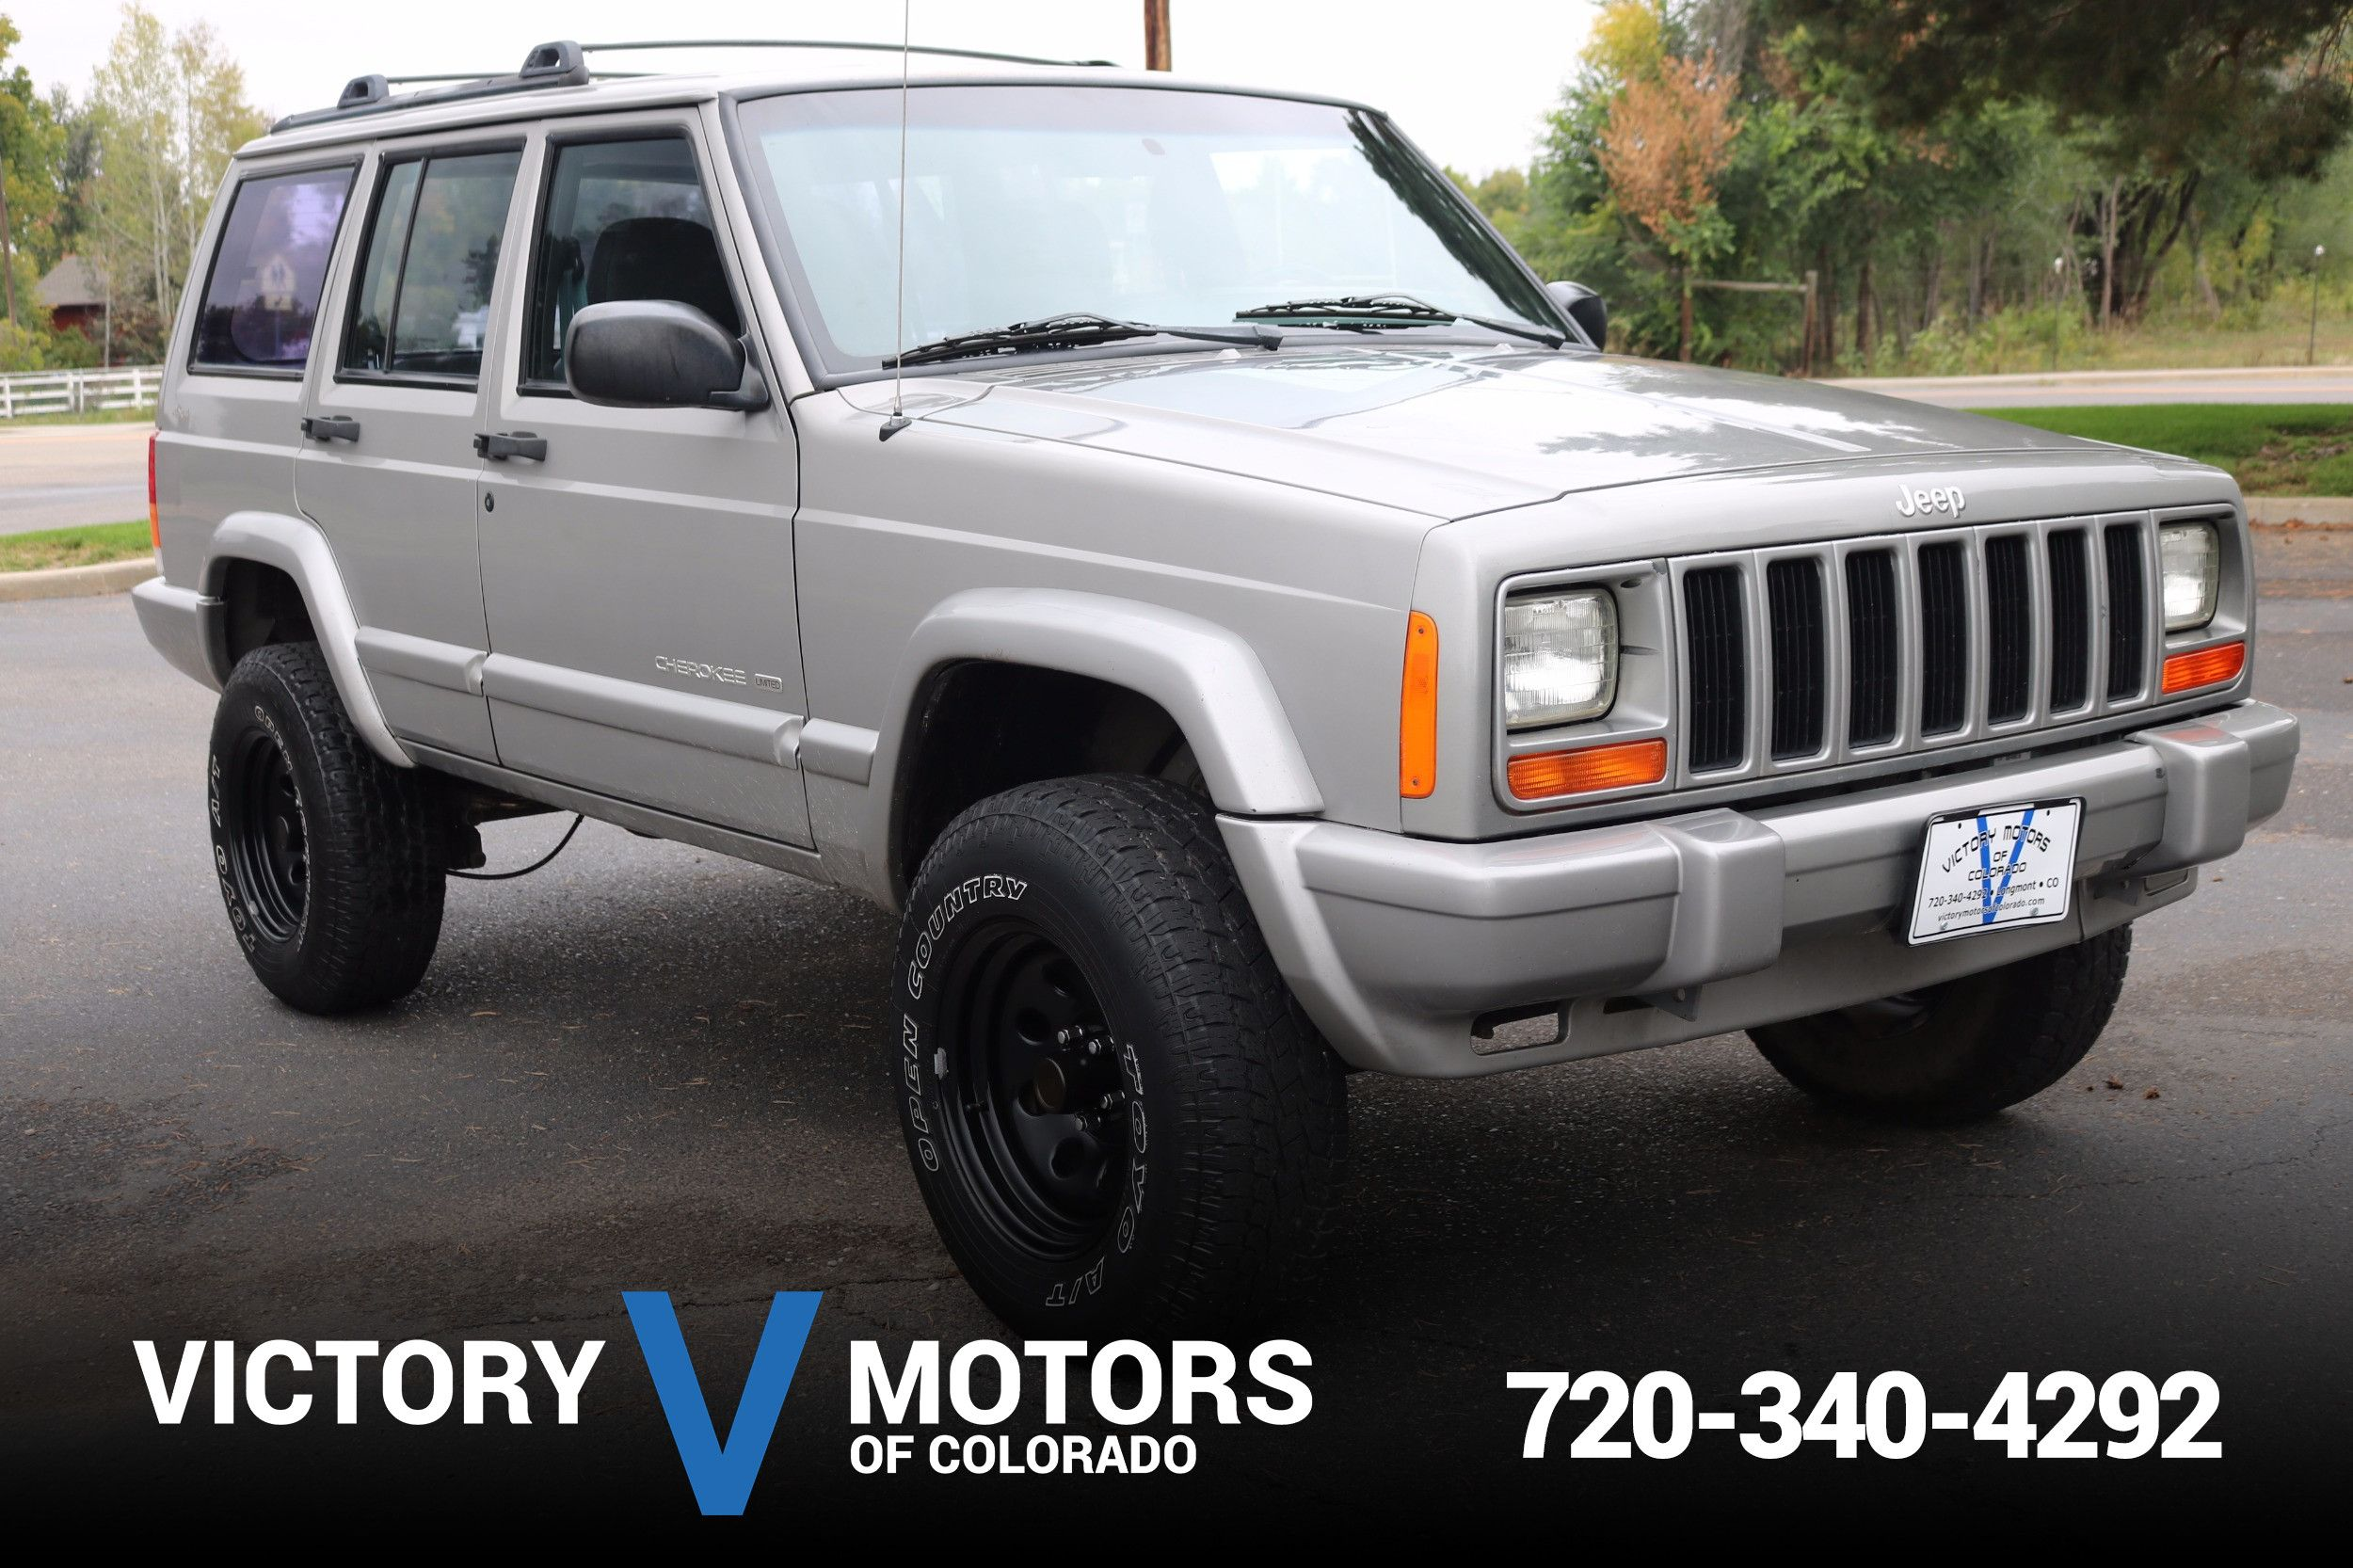 Superb 2001 Jeep Cherokee Limited